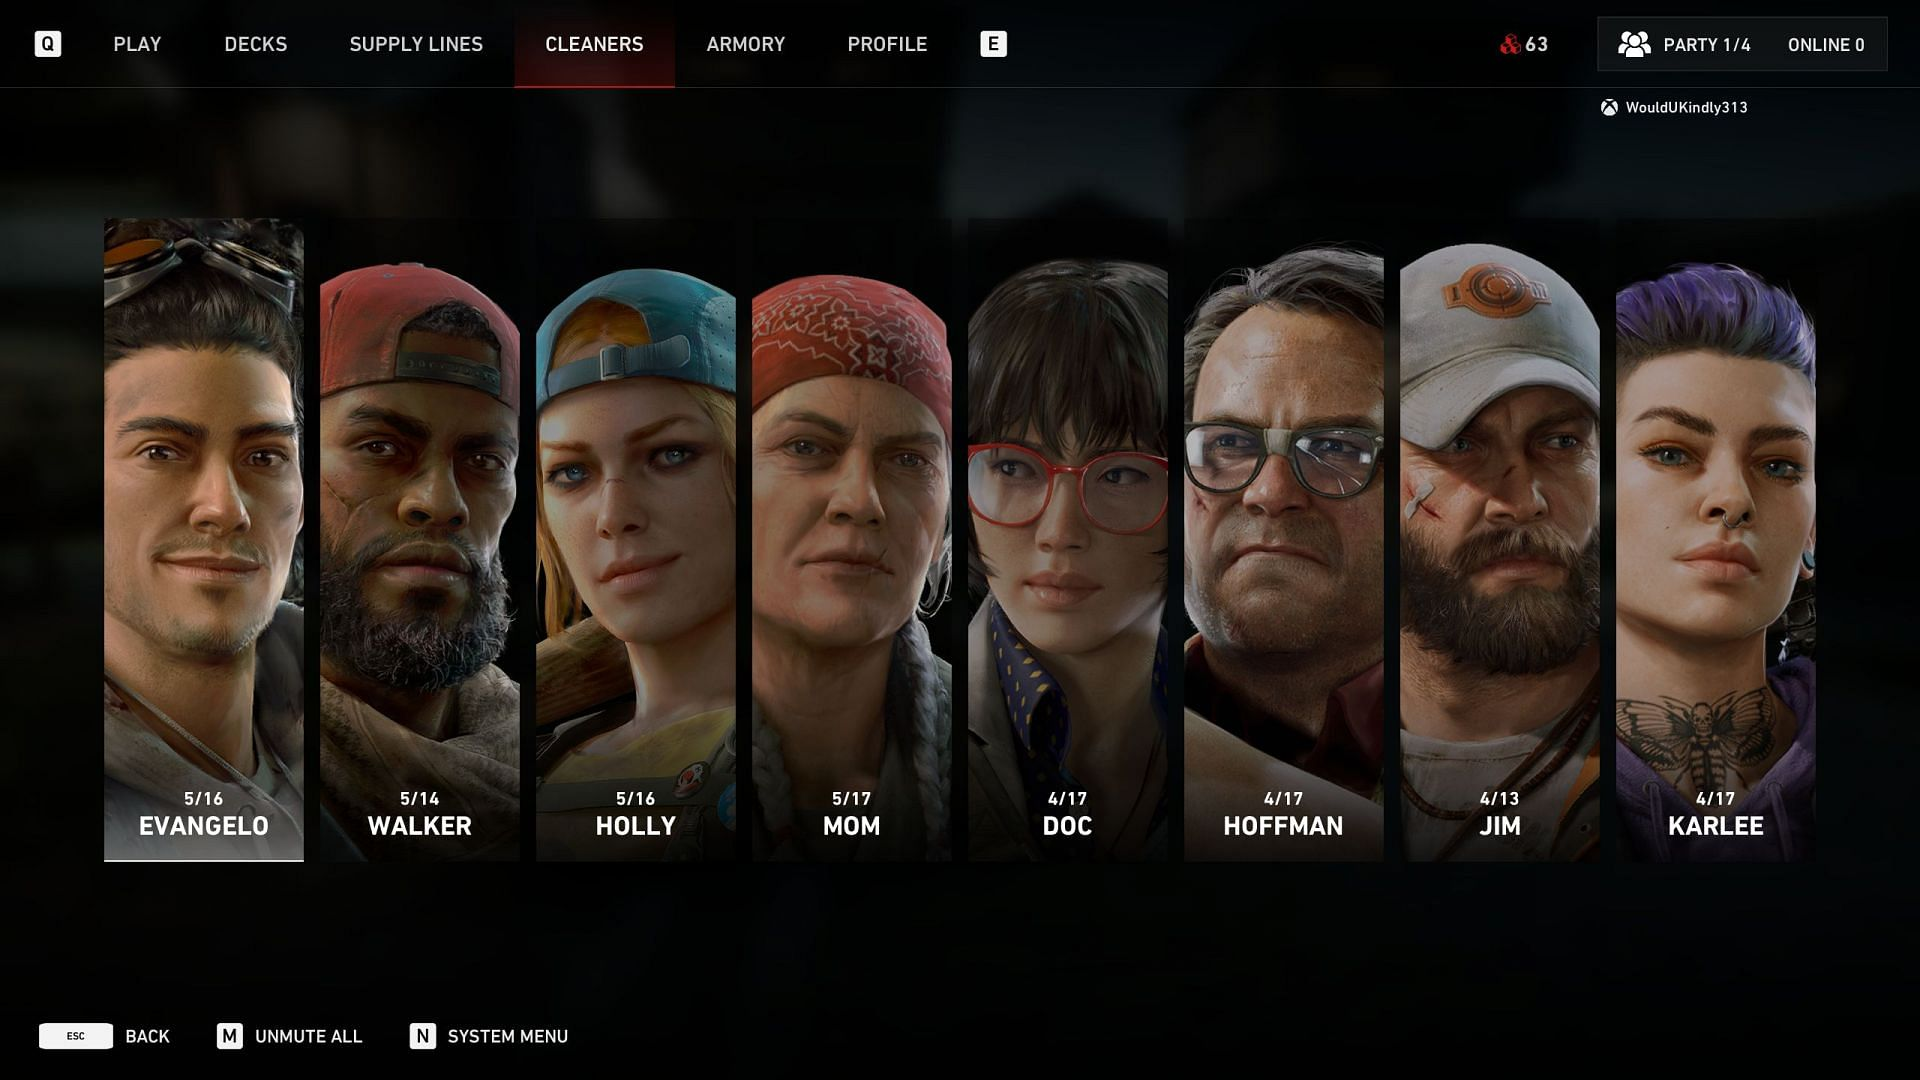 The Cleaner selection screen (Image via Turtle Rock Studios)